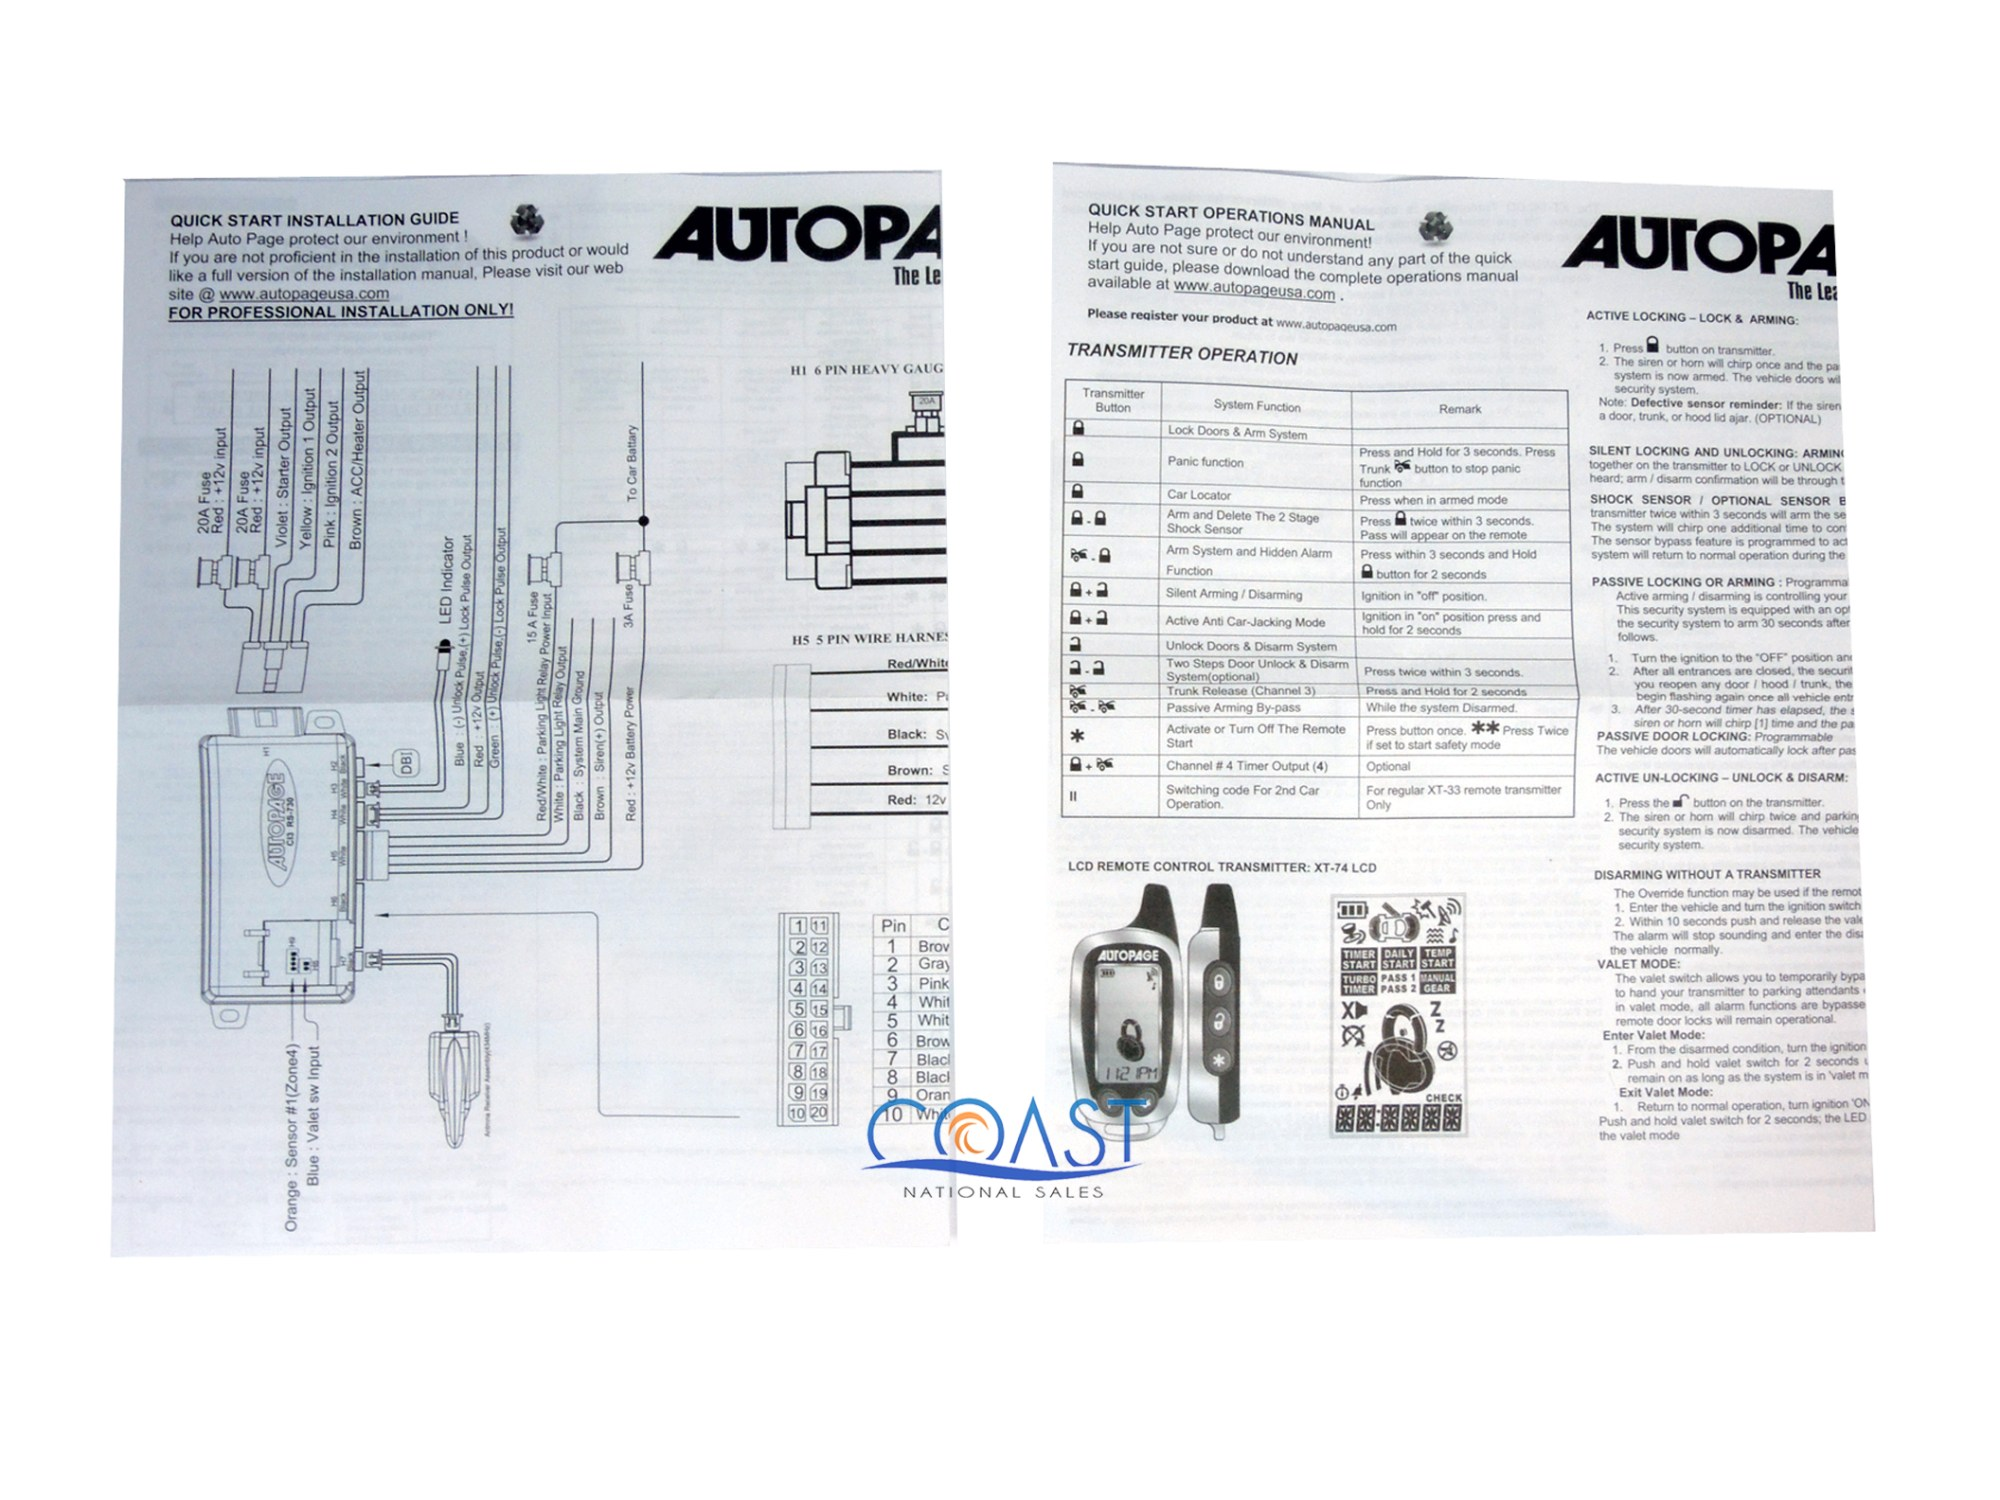 hight resolution of autopage c3 rs730 wiring diagram autopage c3 rs 625 wiring audiovox car alarm wiring diagram audiovox car alarm wiring diagram